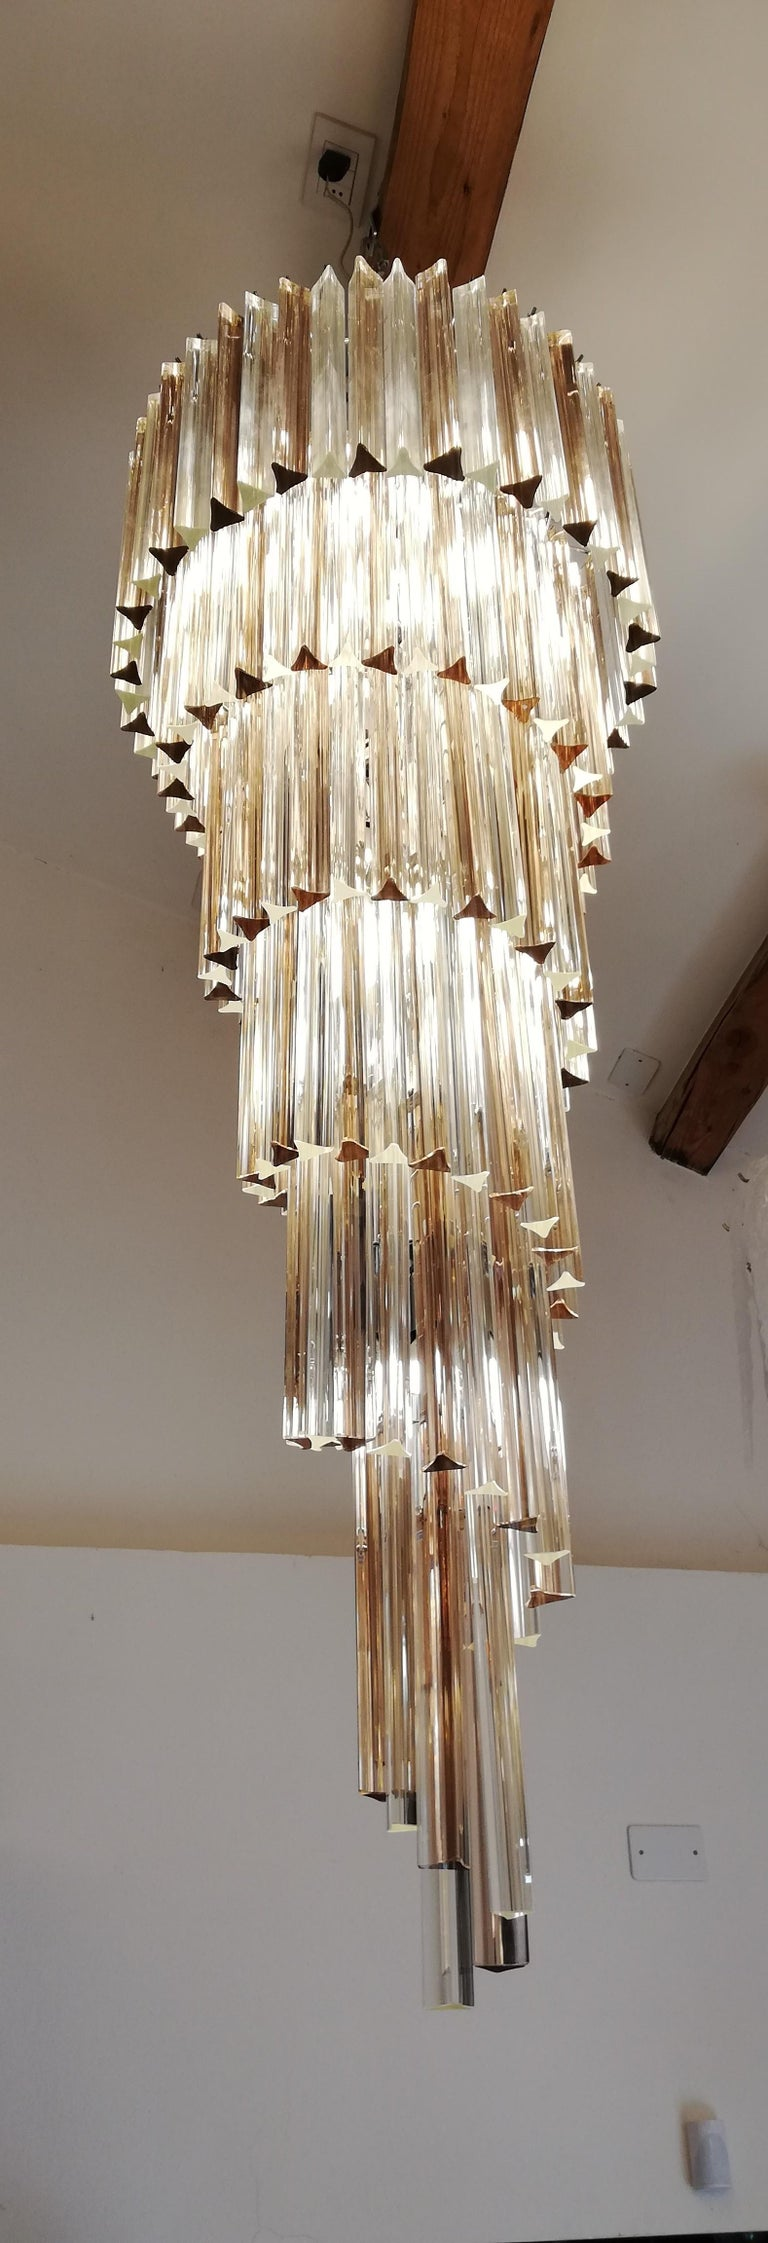 Camer Glass Mid-Century Modern Crystal Amethyst Triedri Murano Chandelier, 1980 For Sale 13